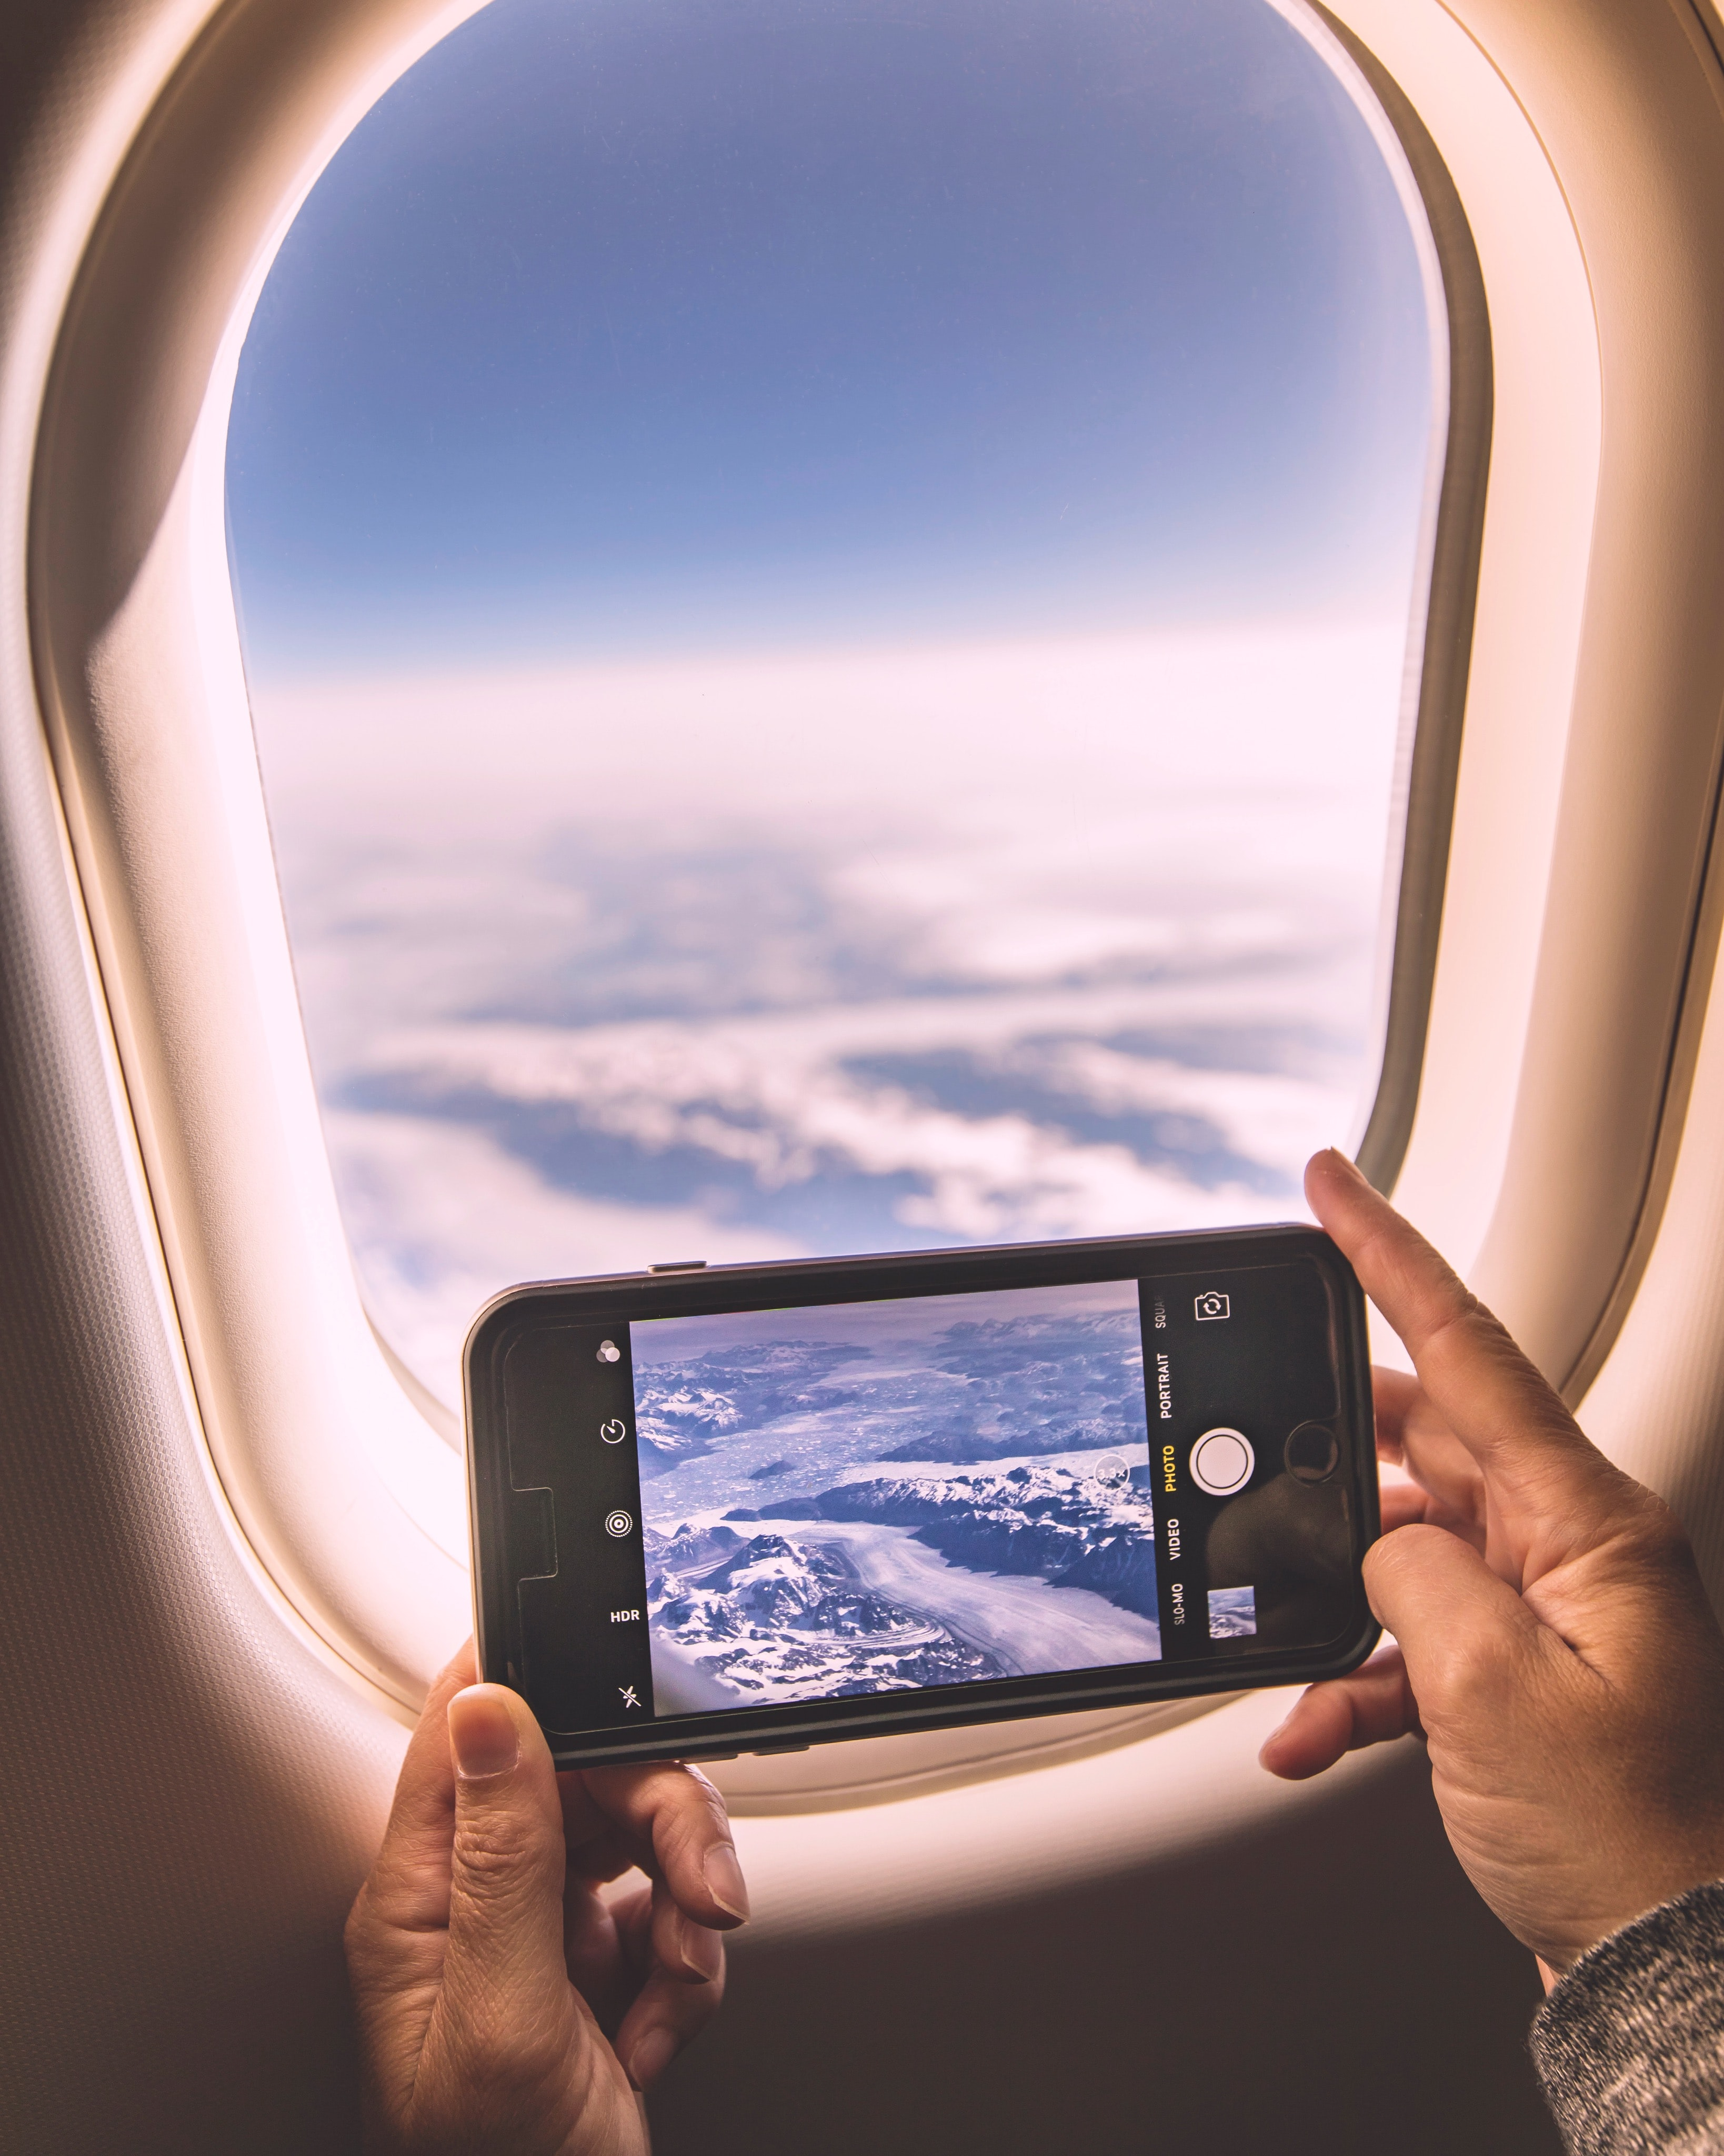 selective focus photography of person holding iPhone while taking photo of sky